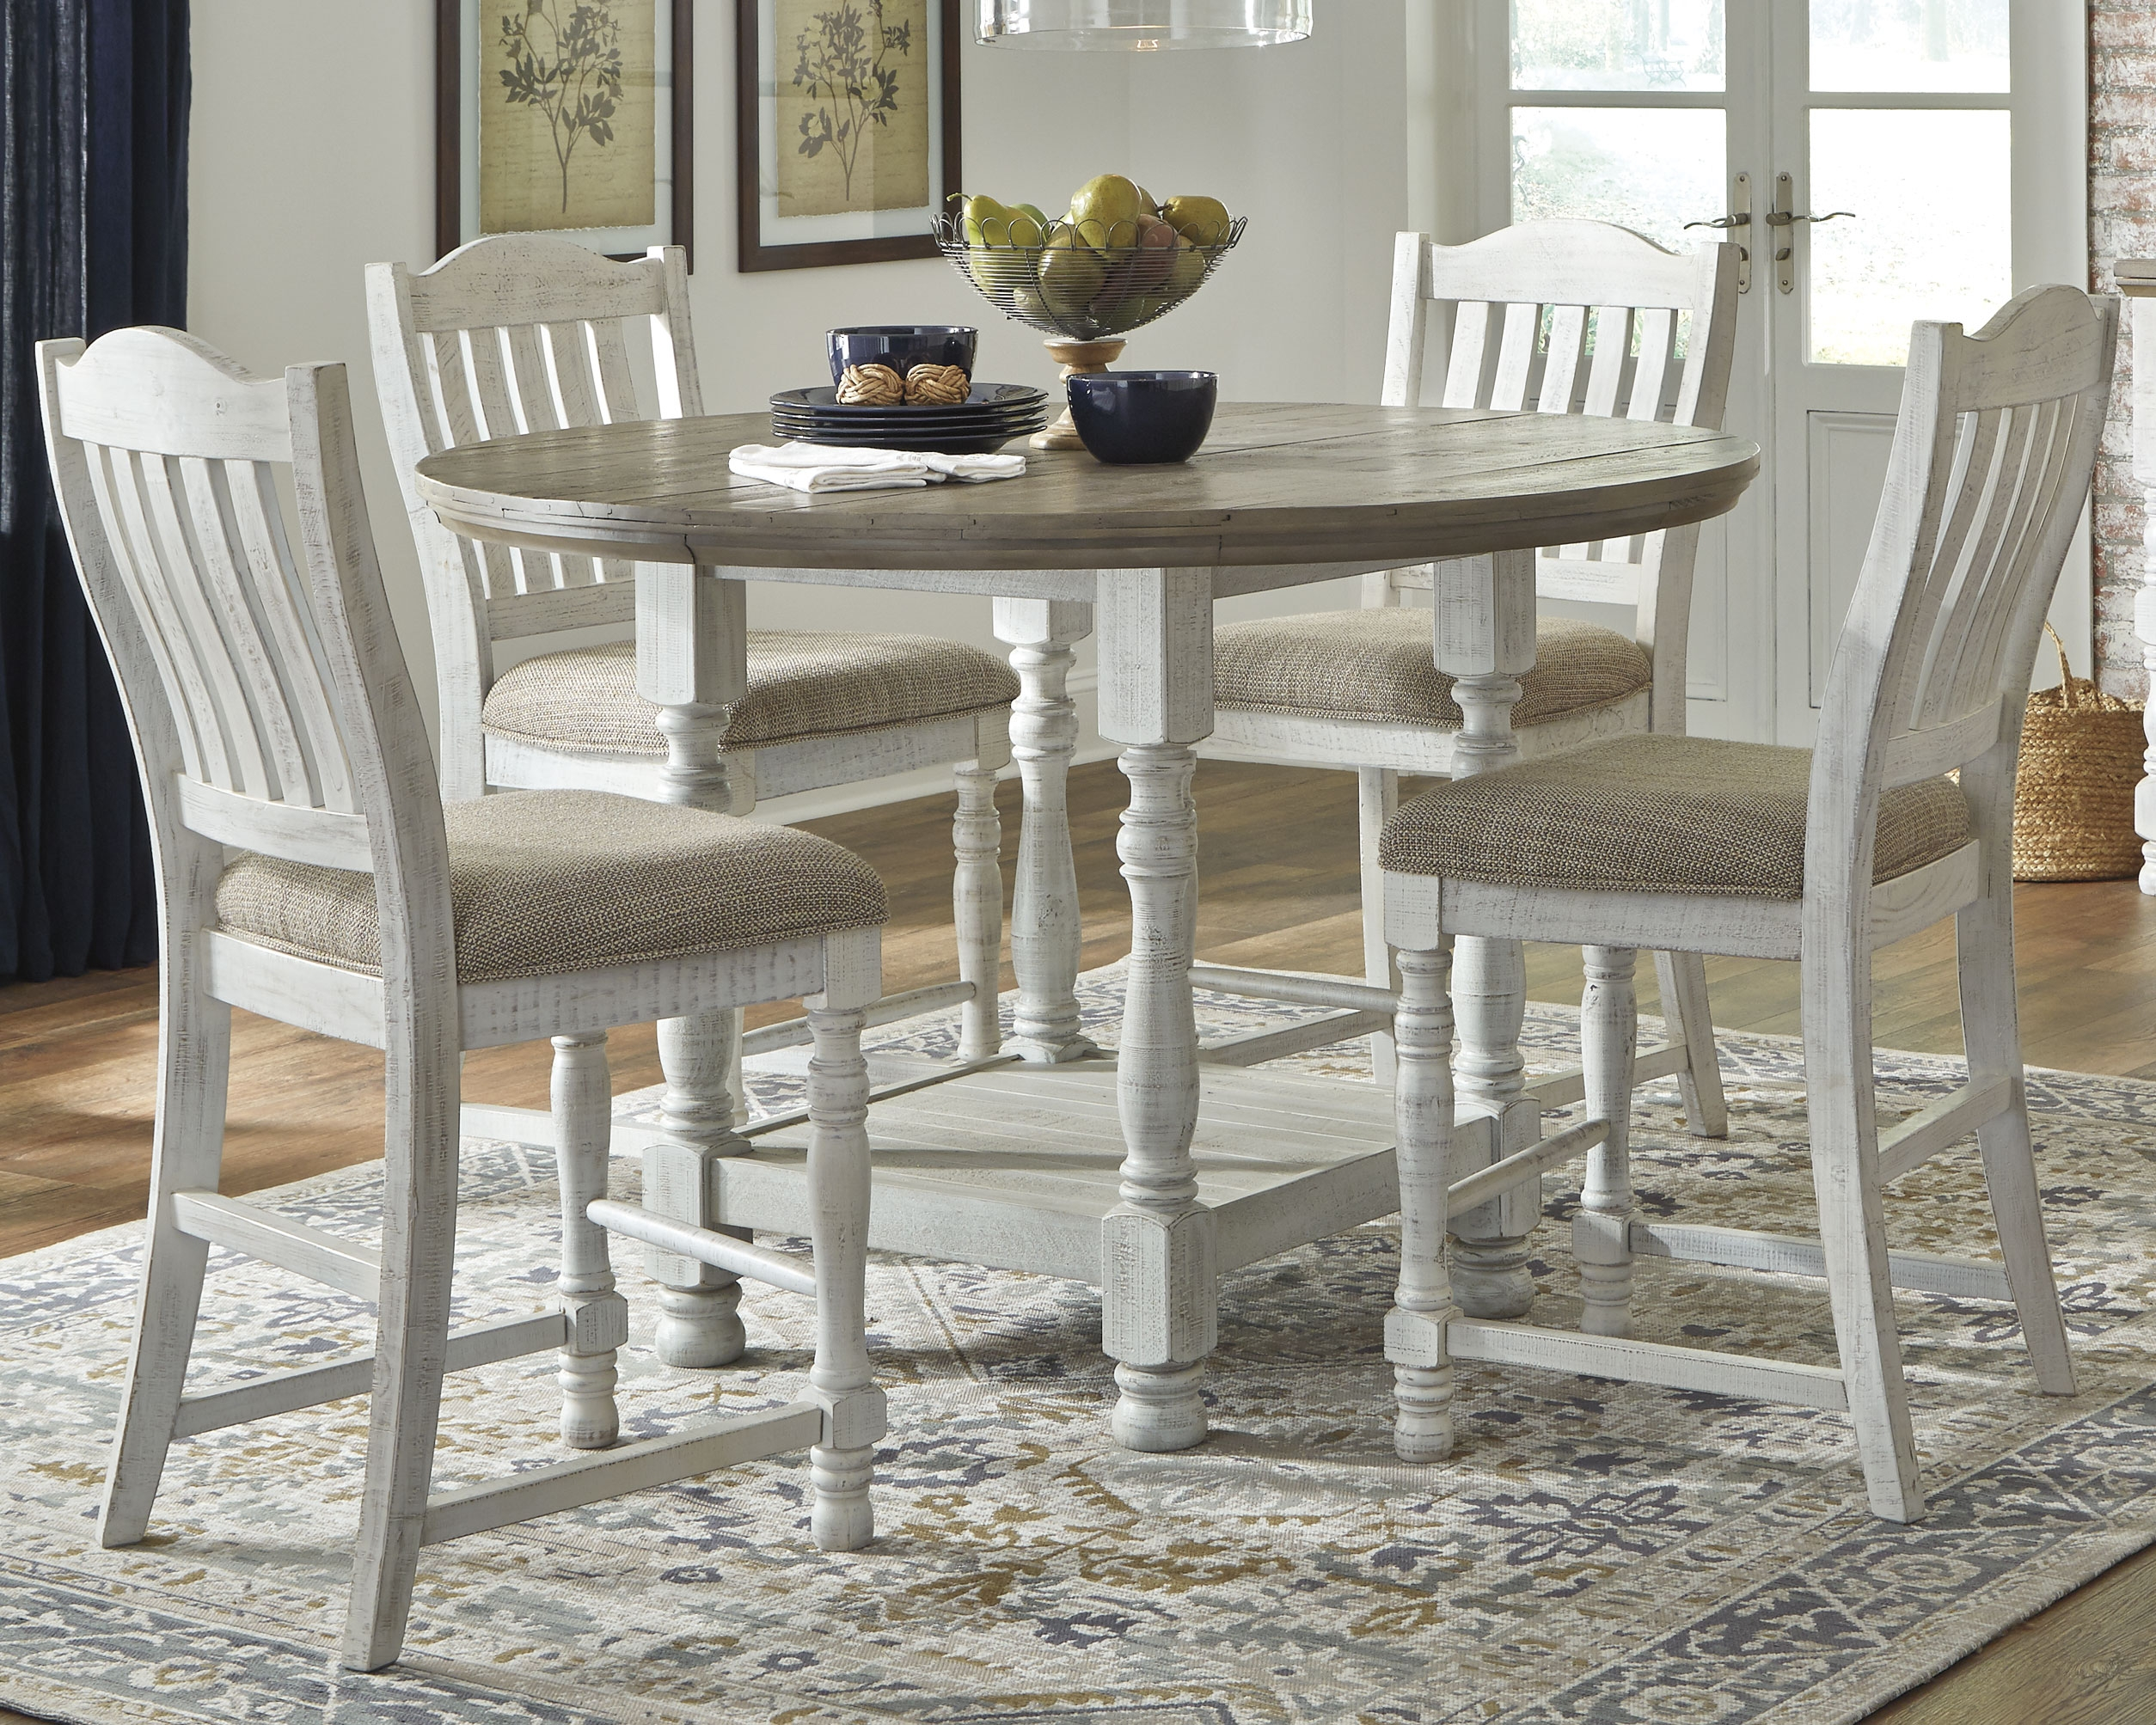 Havalance Counter Height Dining Room Table By Millennium By Ashley Nis568798353 Missouri Furniture